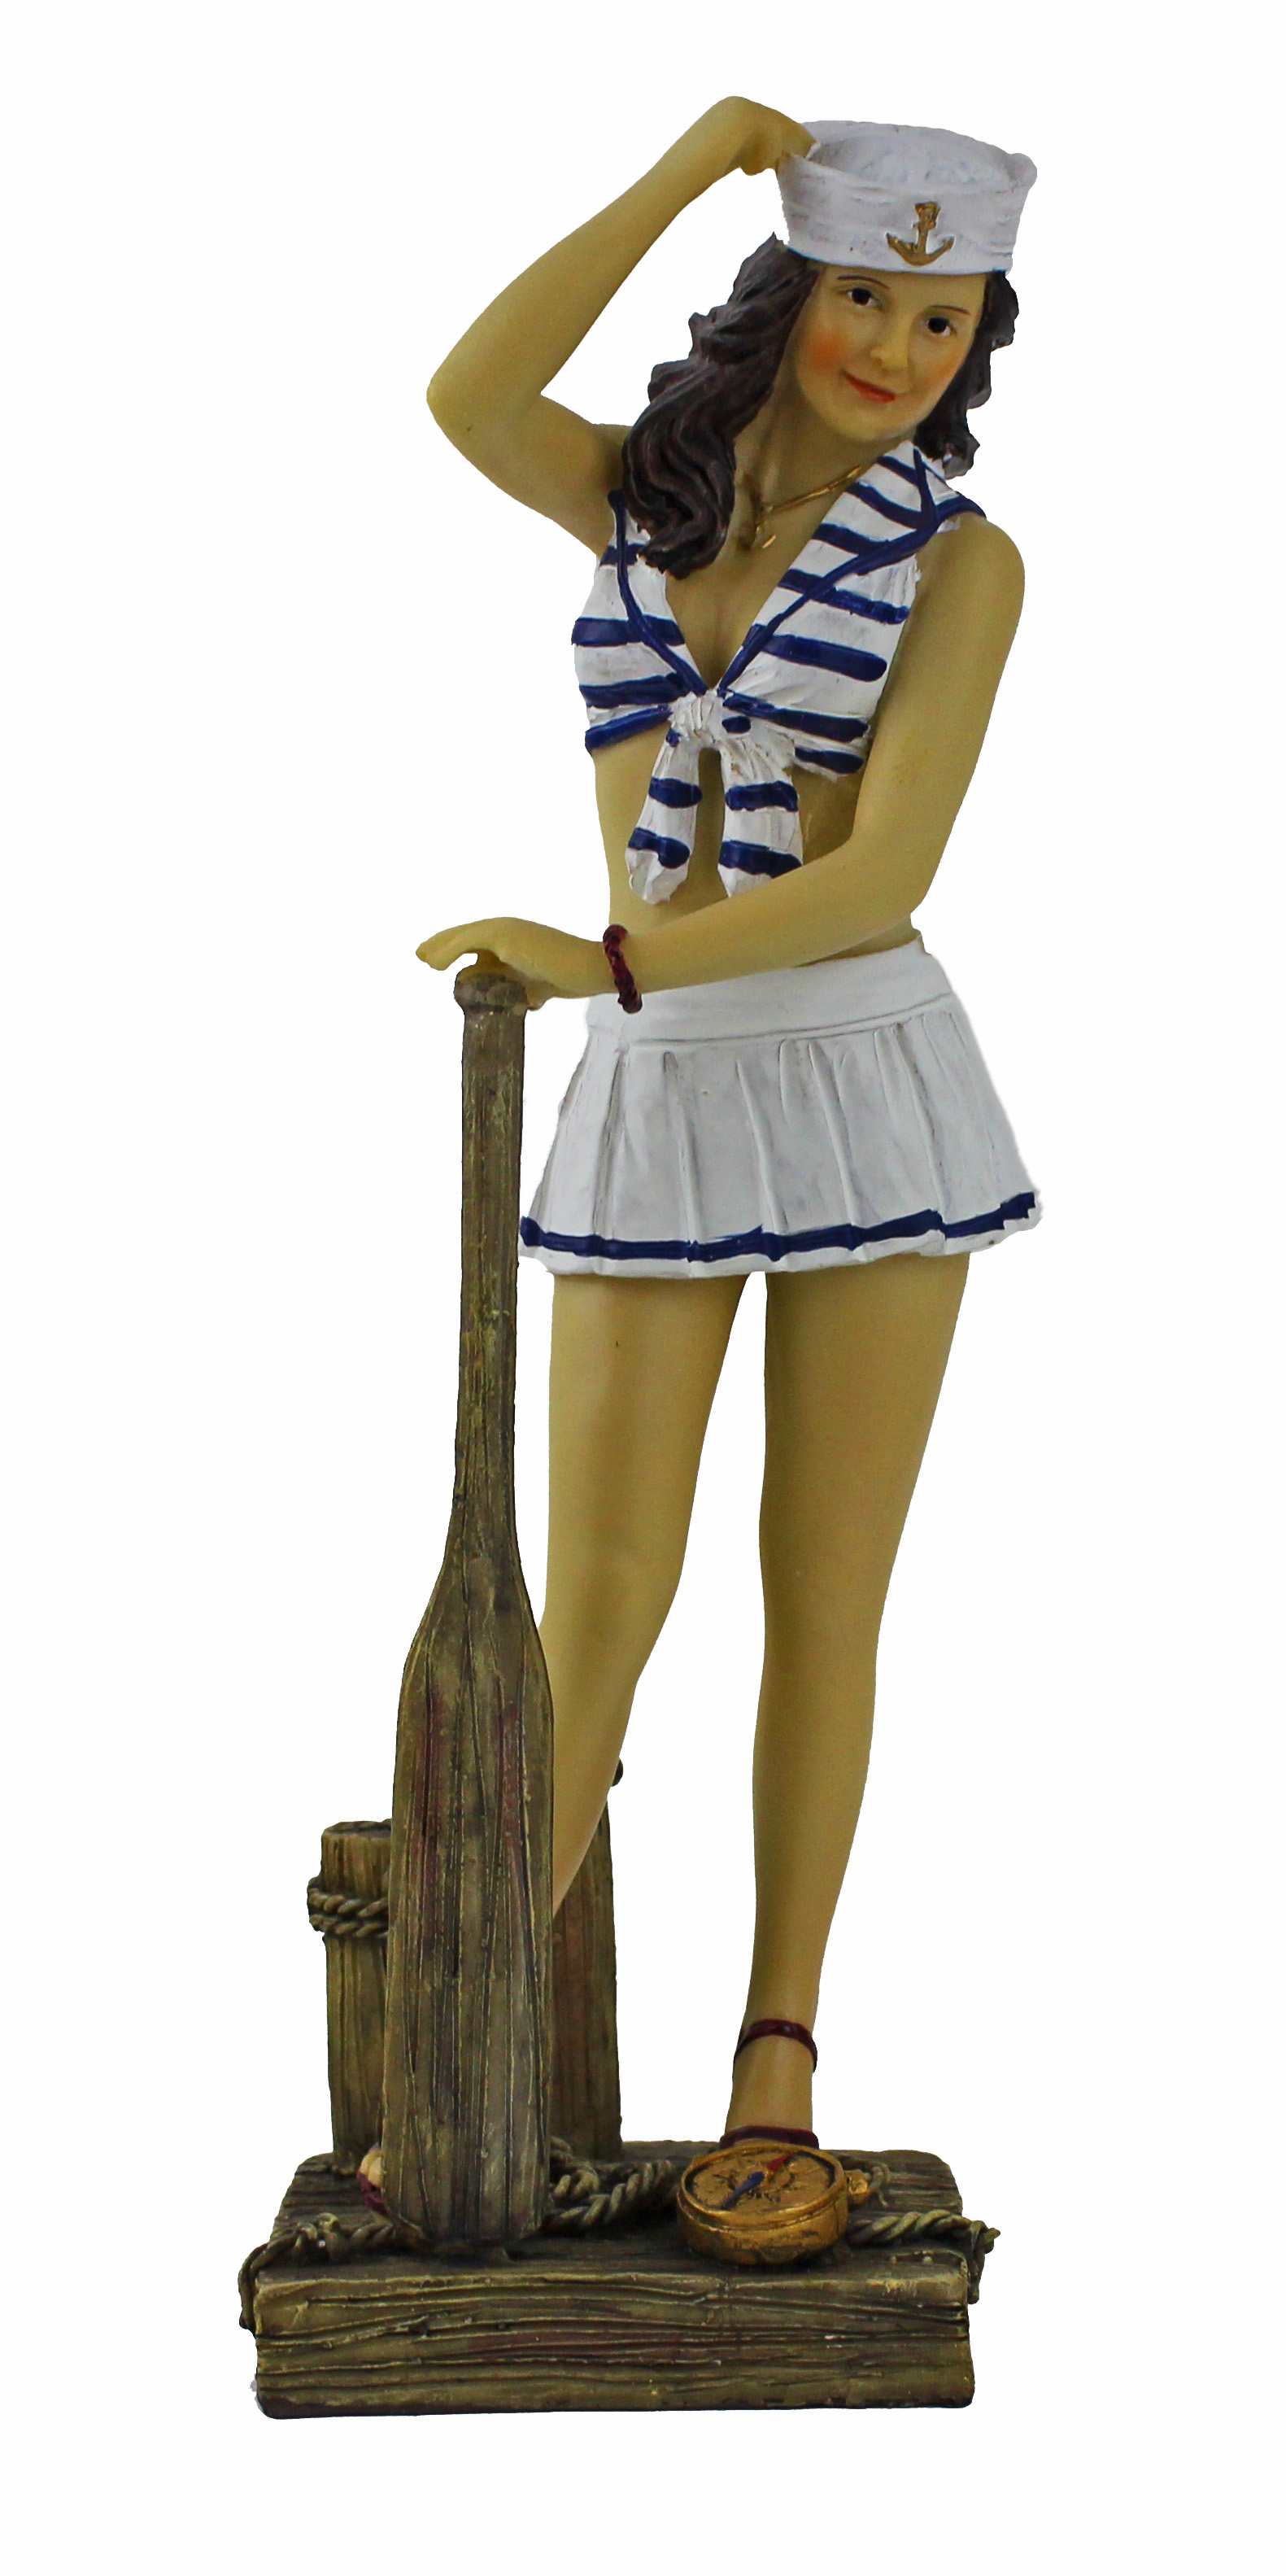 "10""H Polystone Lady Sailor Figurine with Paddle"